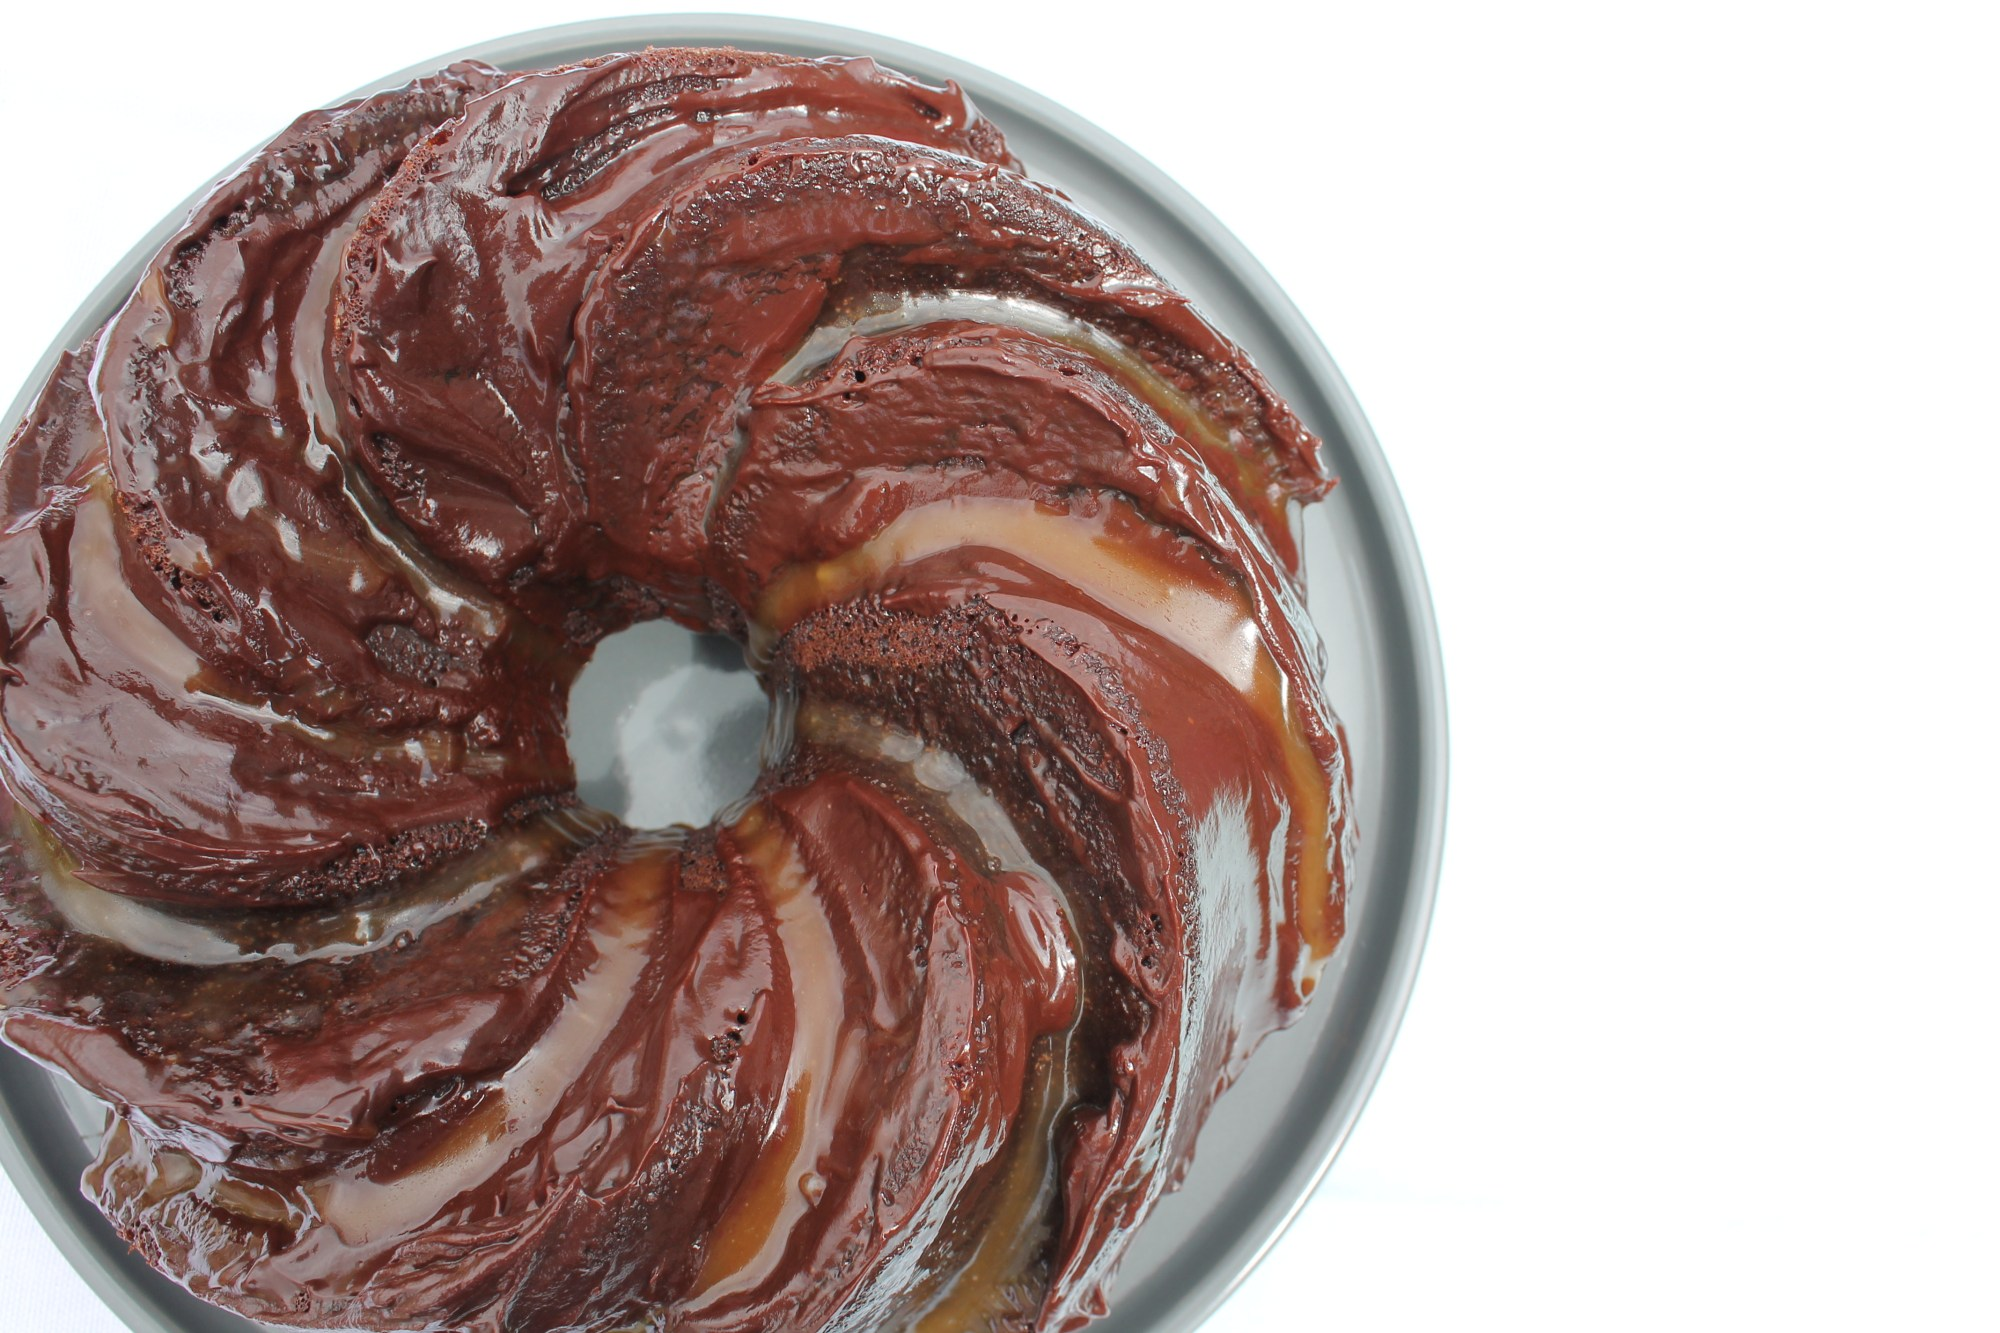 chocolate and caramel swirl bundt